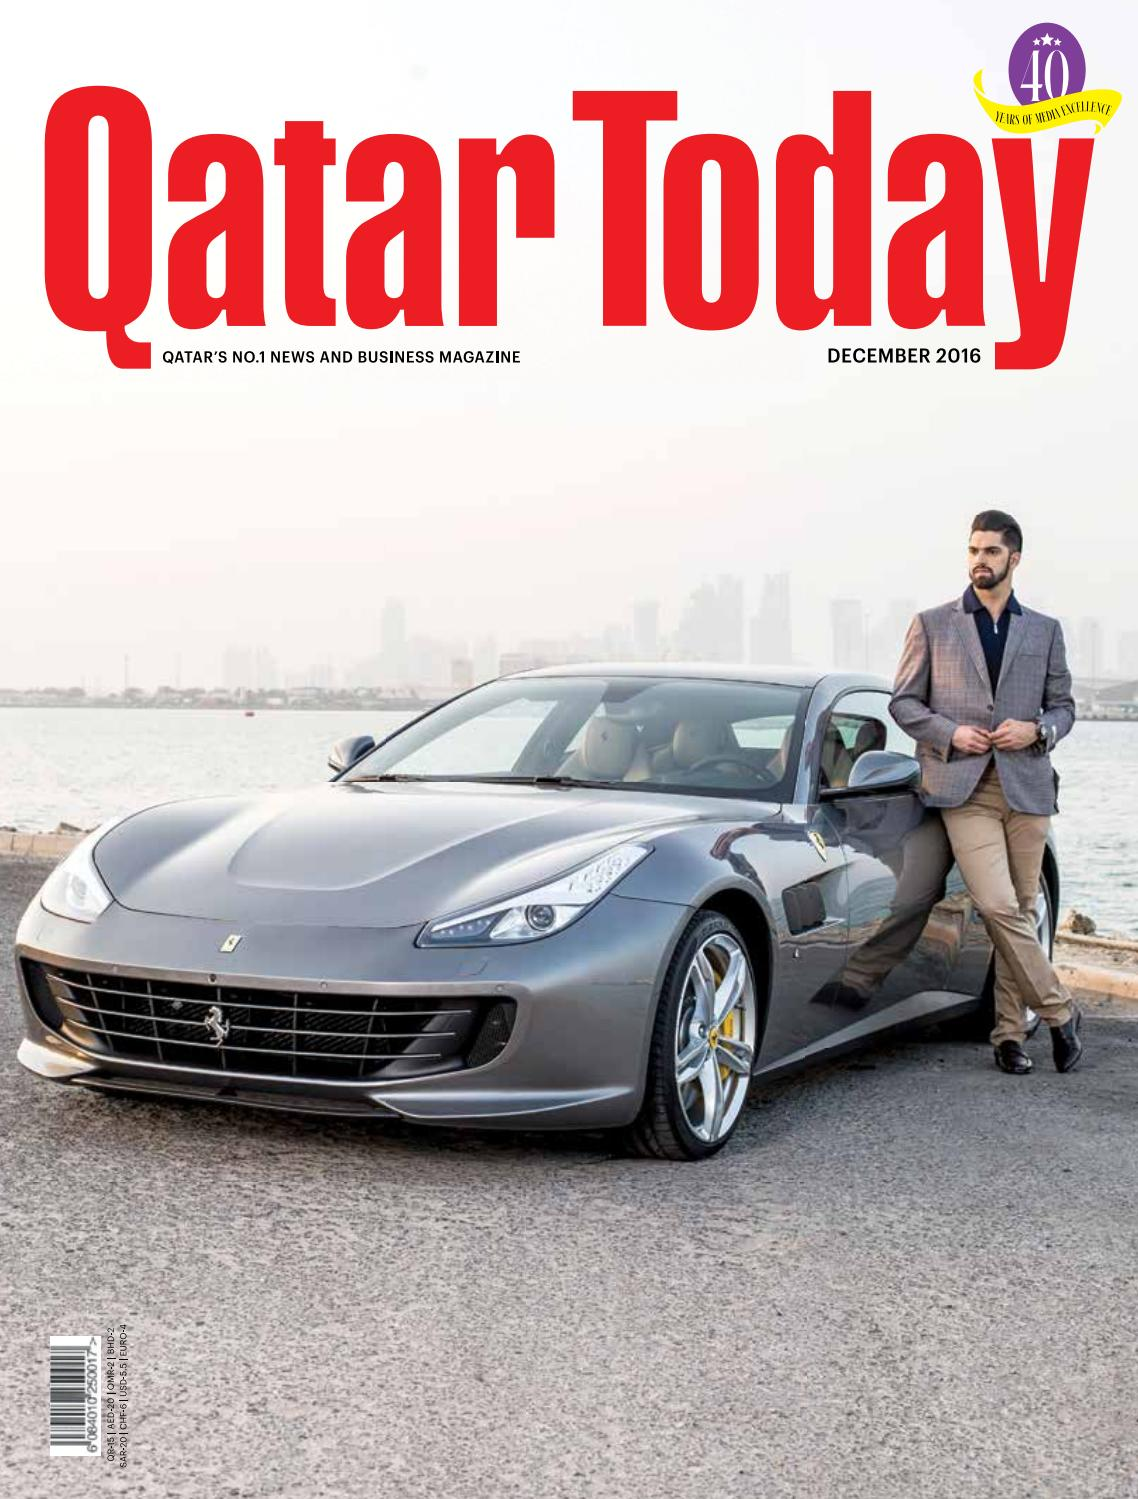 Qatar Today December 2016 By Oryx Group Of Magazines Issuu